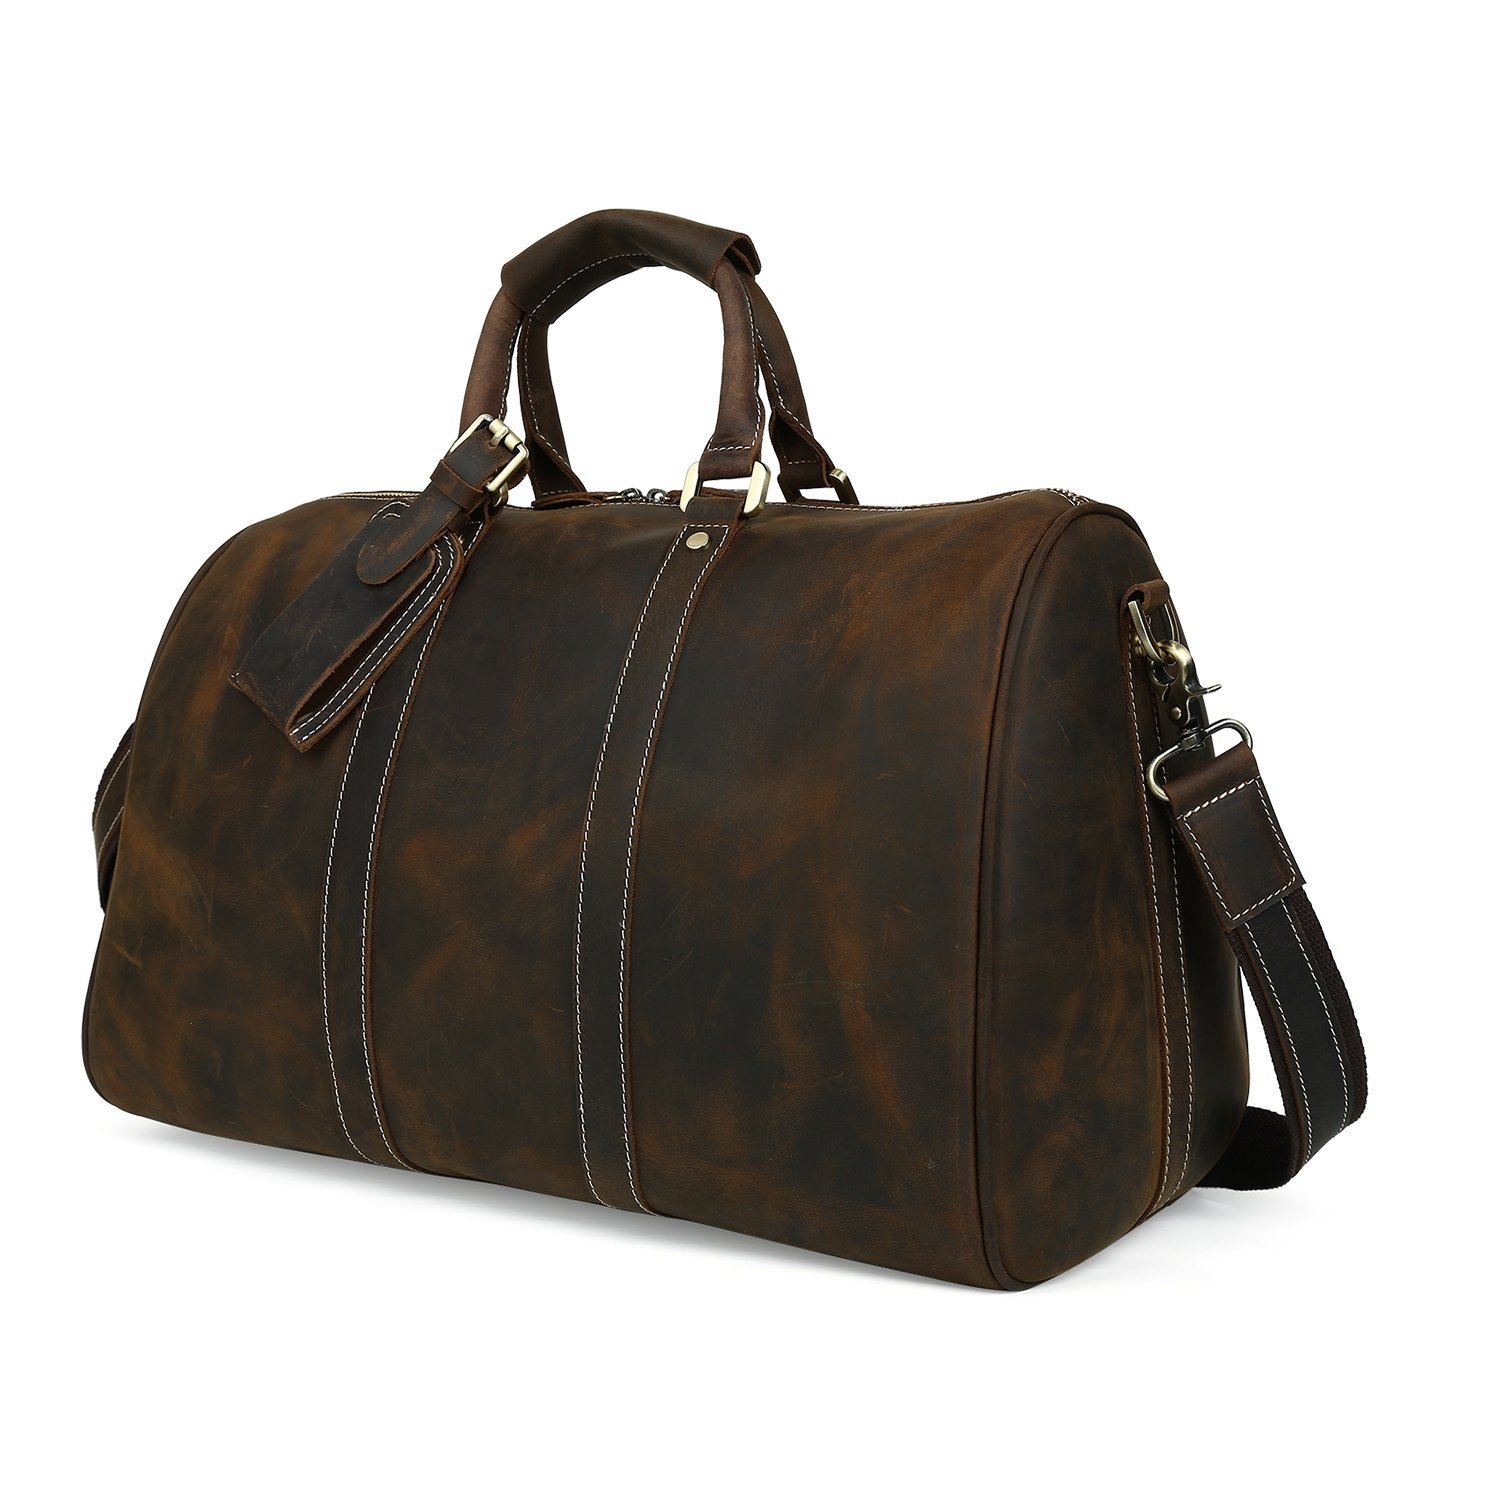 9ceedc528b Get Quotations · Huntvp Mens Crazy Horse Leather Overnight Duffle Bag  Vintage Tote Crossbody Bags